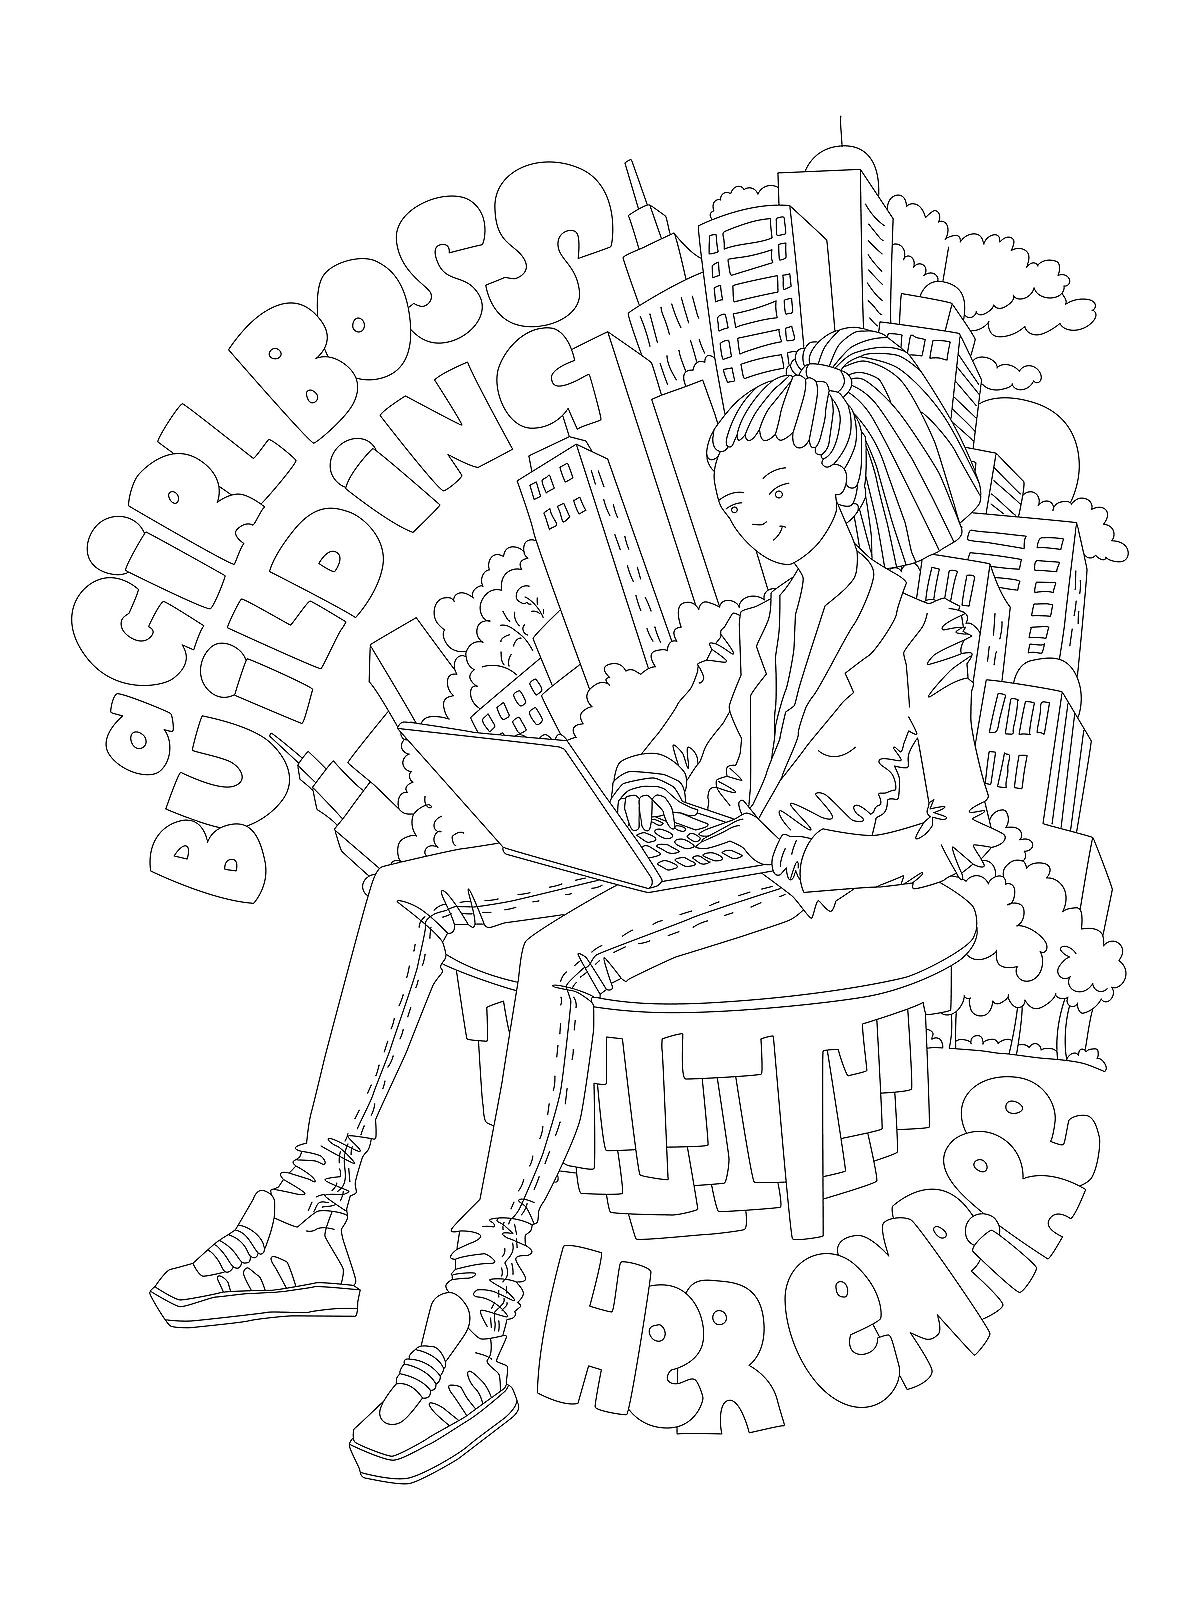 Line Artsy - Free adult coloring page - Time (uncolored) | Free ... | 1600x1200